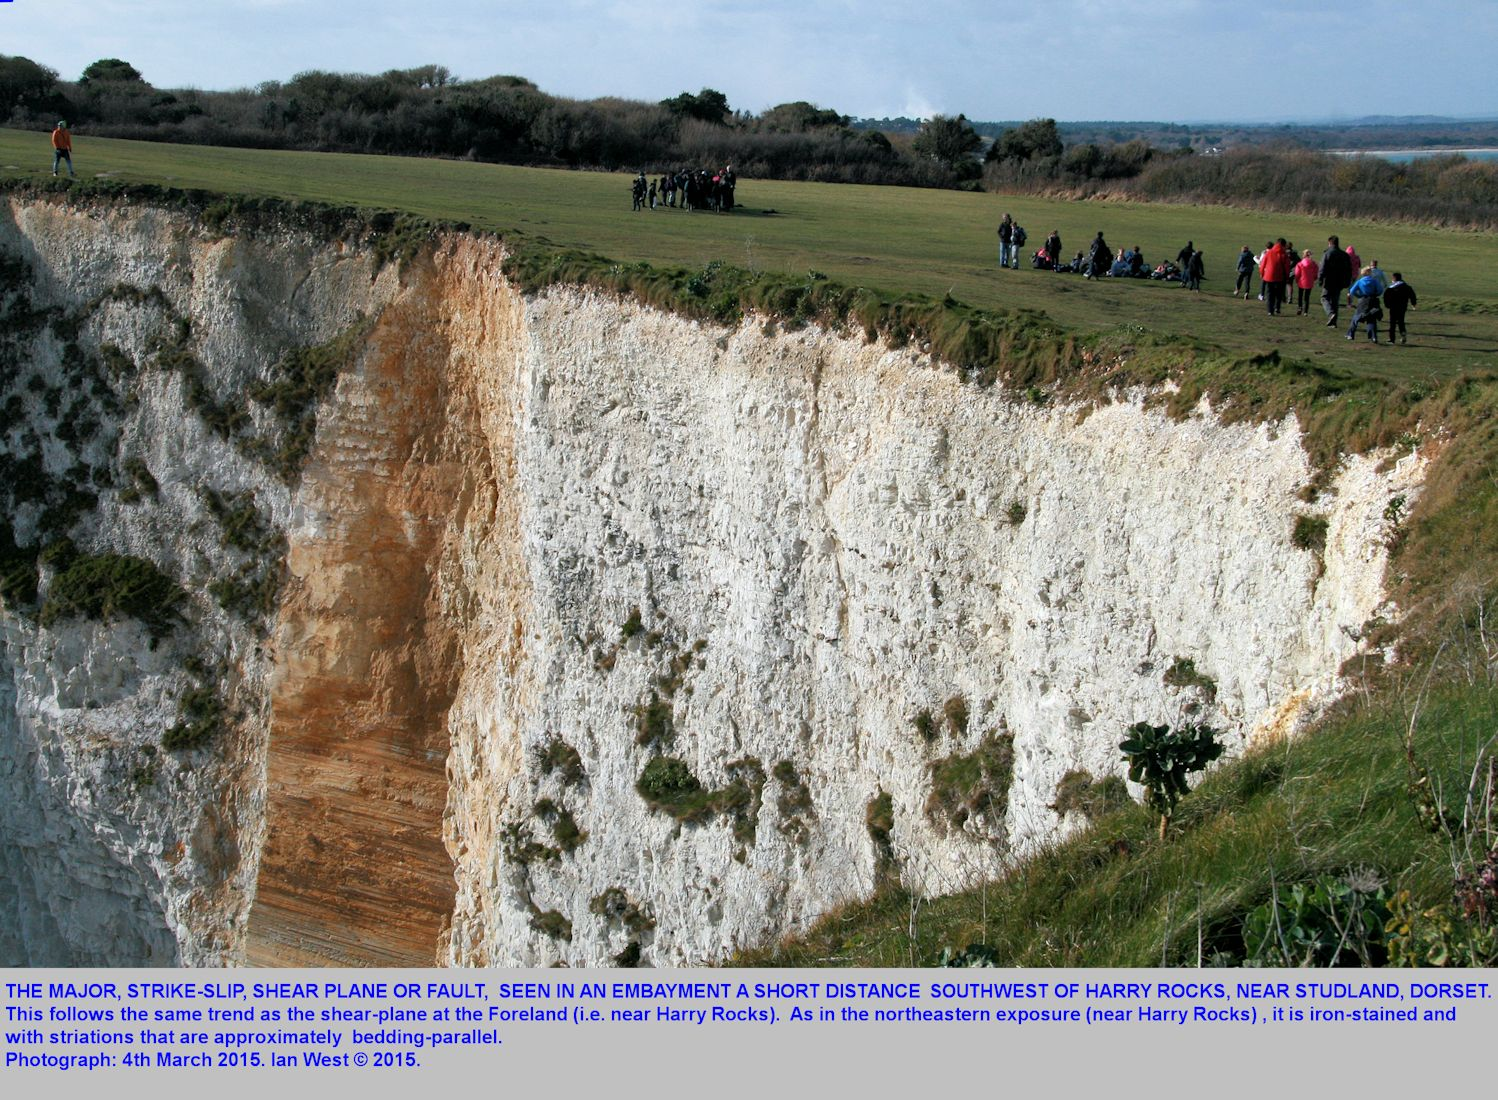 Strike-slip fault with well-defined shear plane, southwest of Harry Rocks, near Studland, Dorset, March 2015